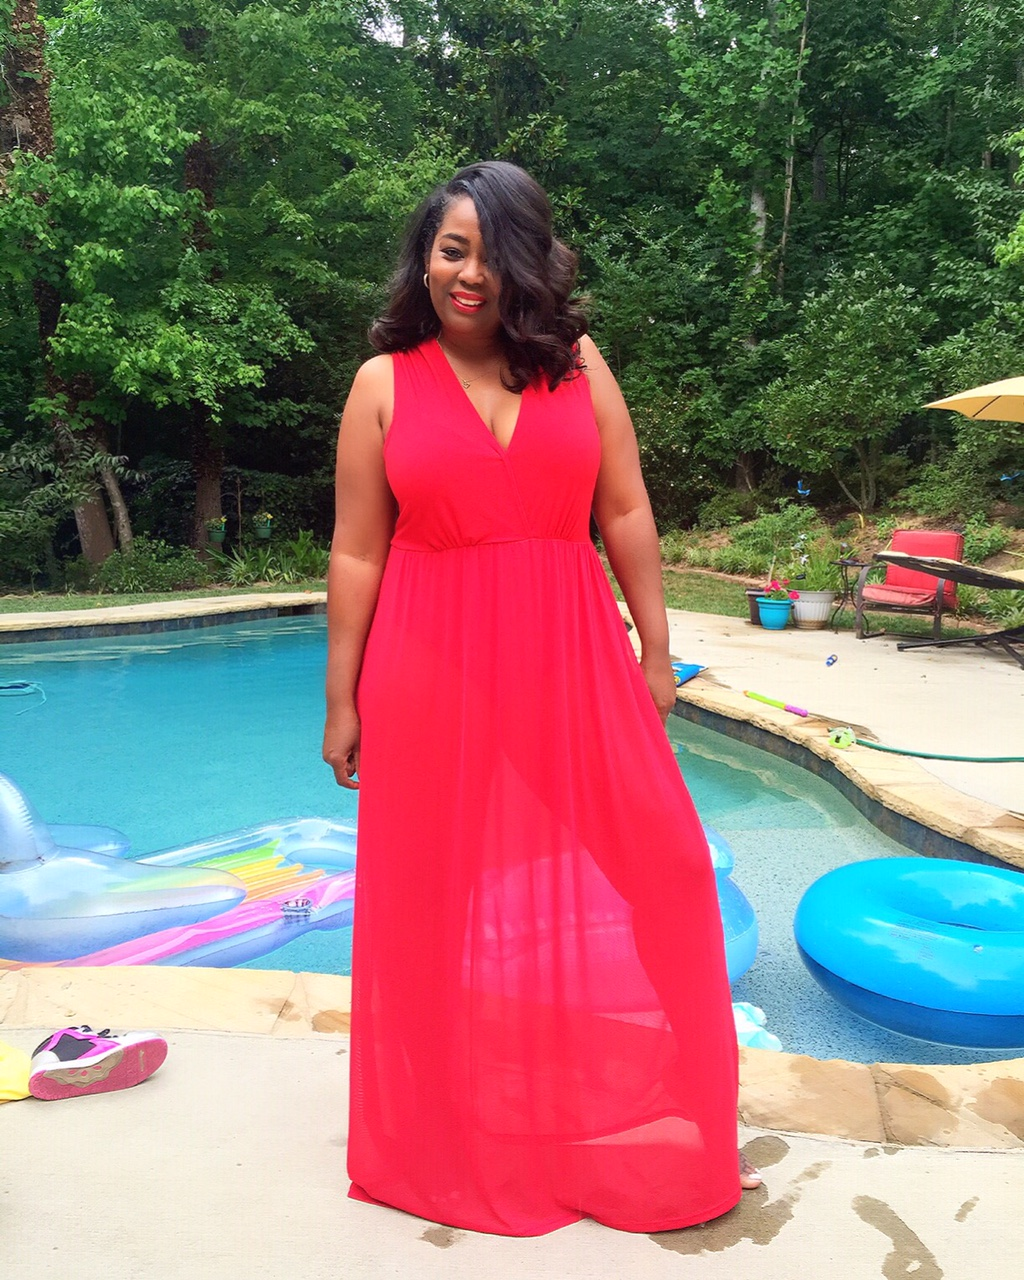 My Style: Chic & Curvy Sheer Maxi Dress